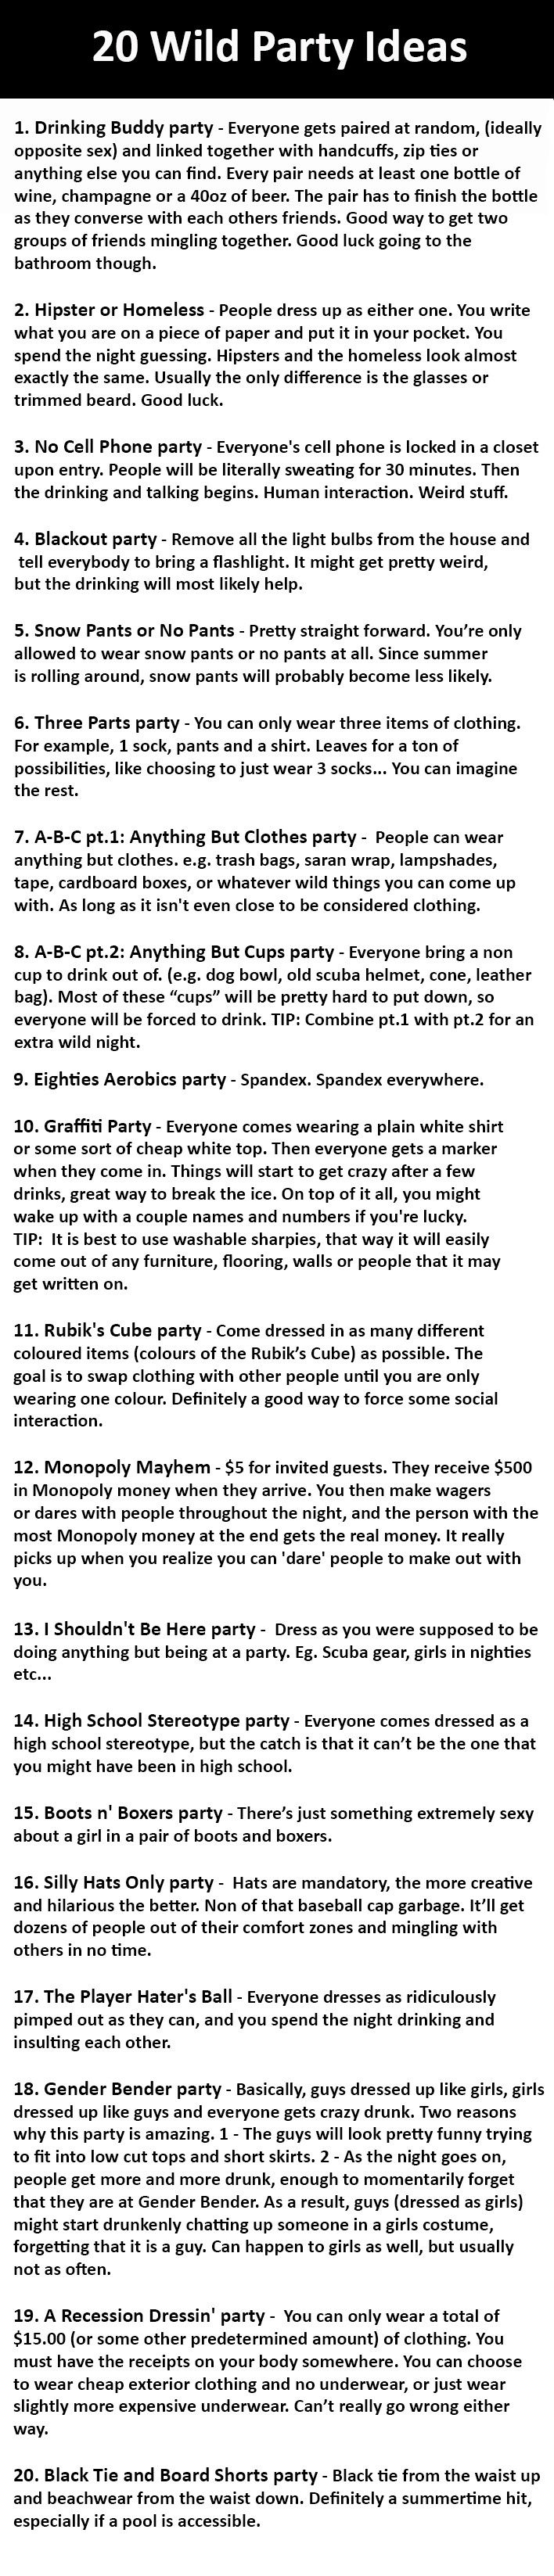 Strange party ideas :D